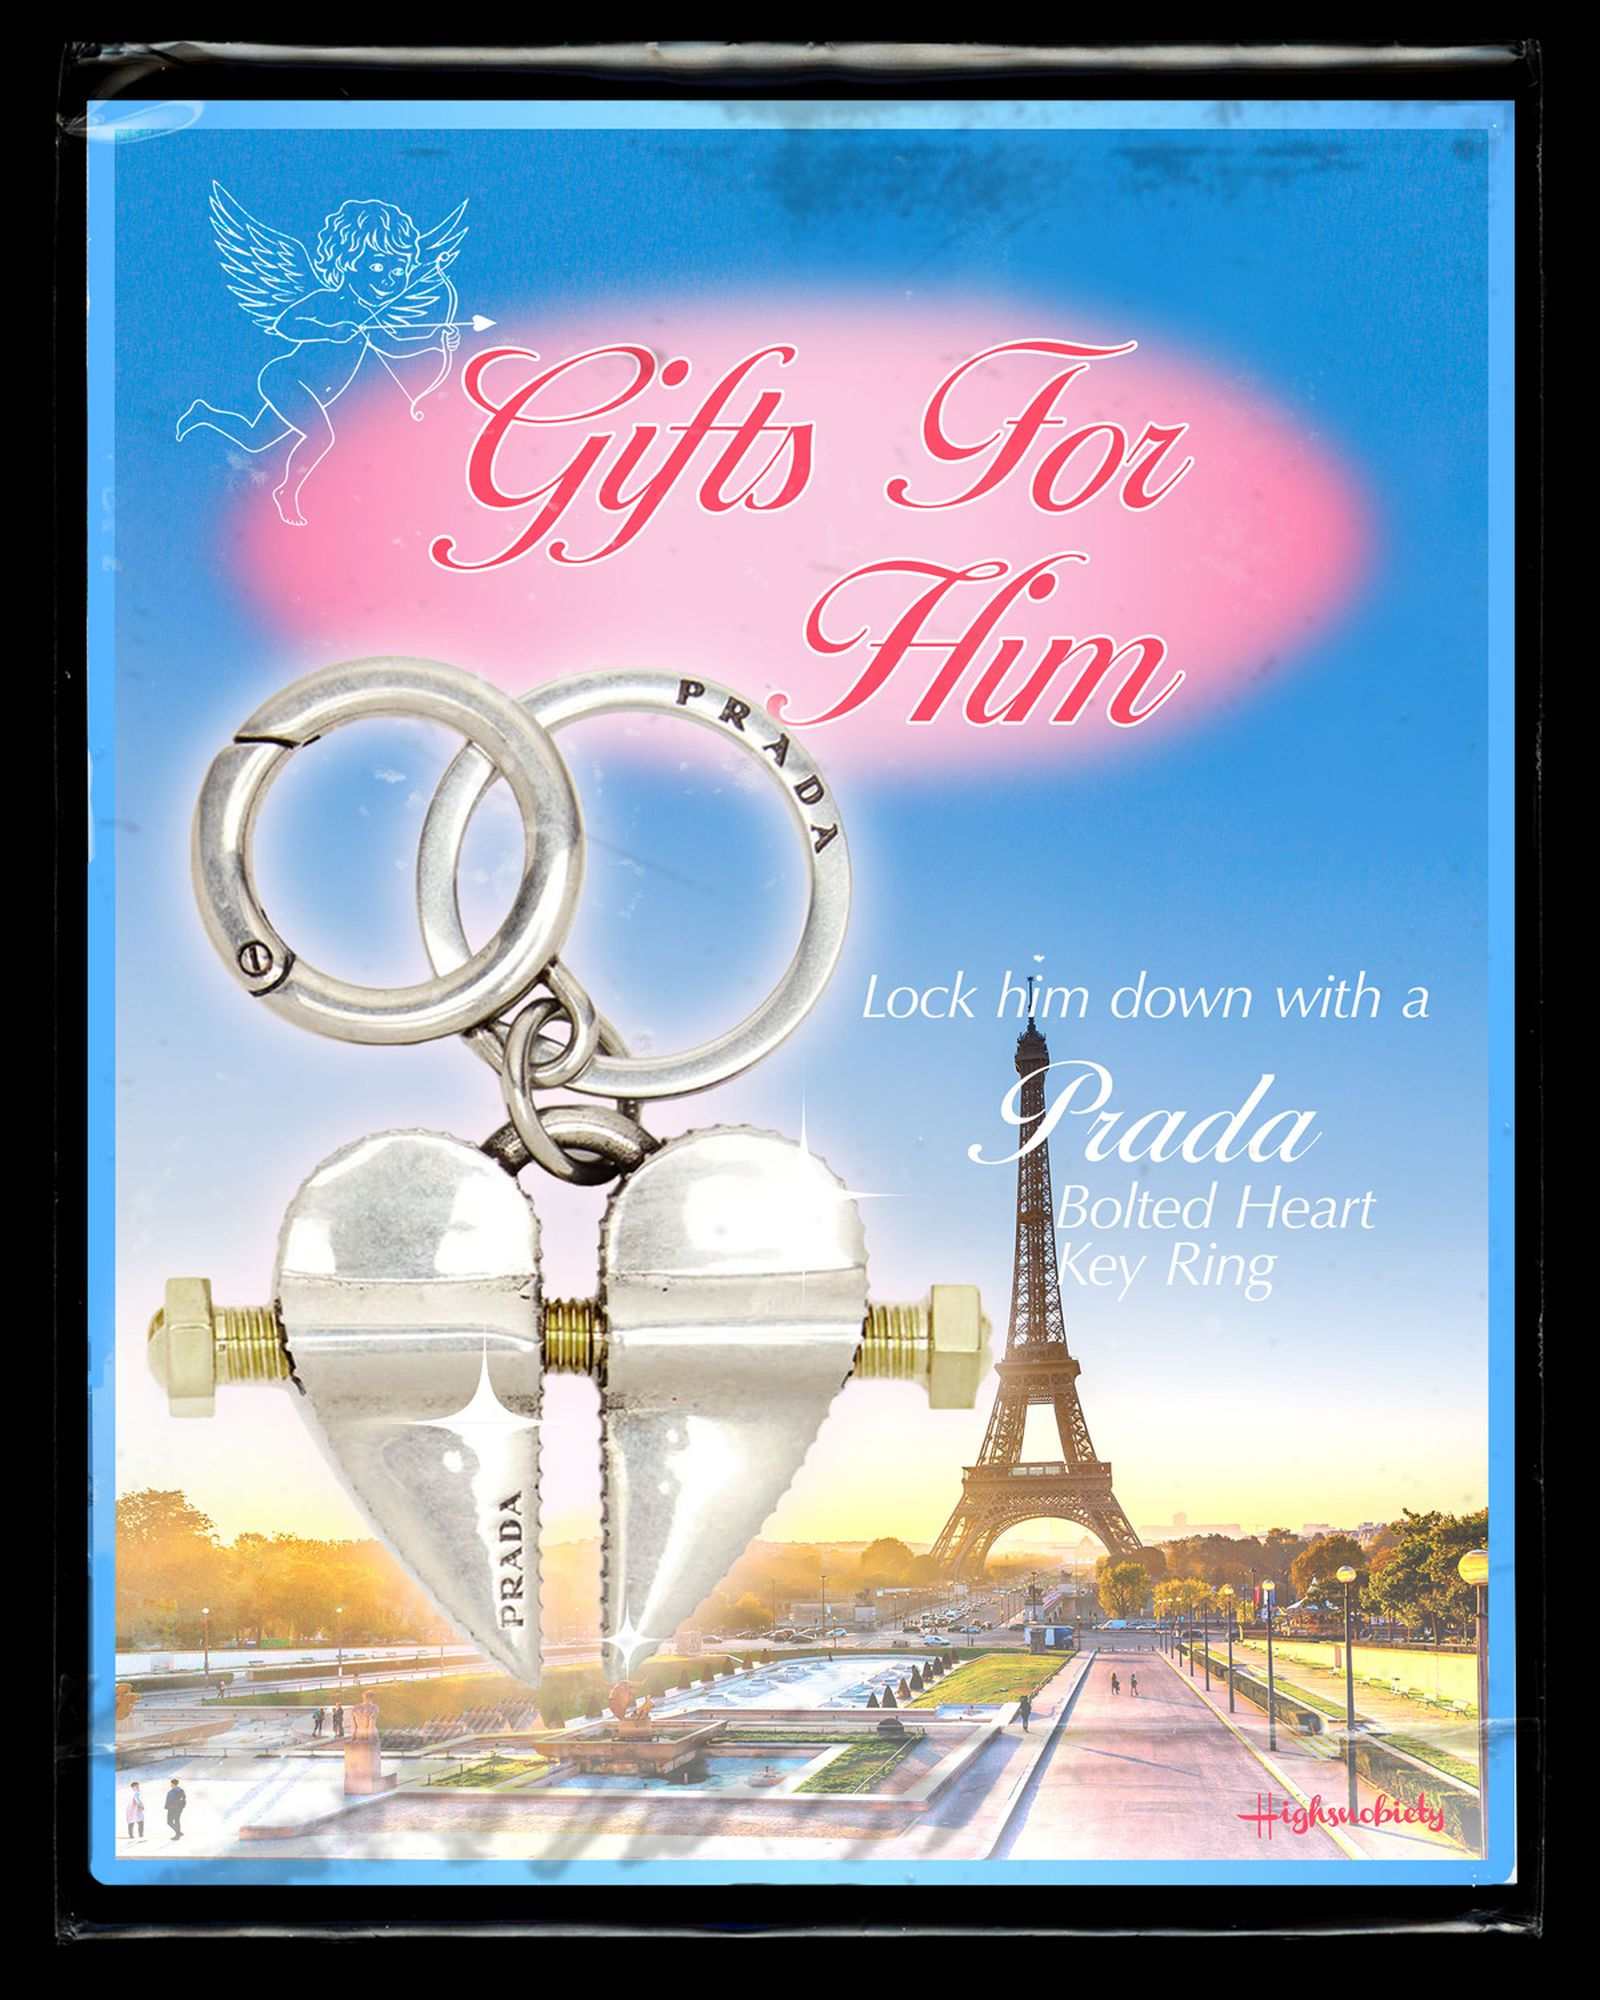 valentines-gift-guide-For_him_4x5